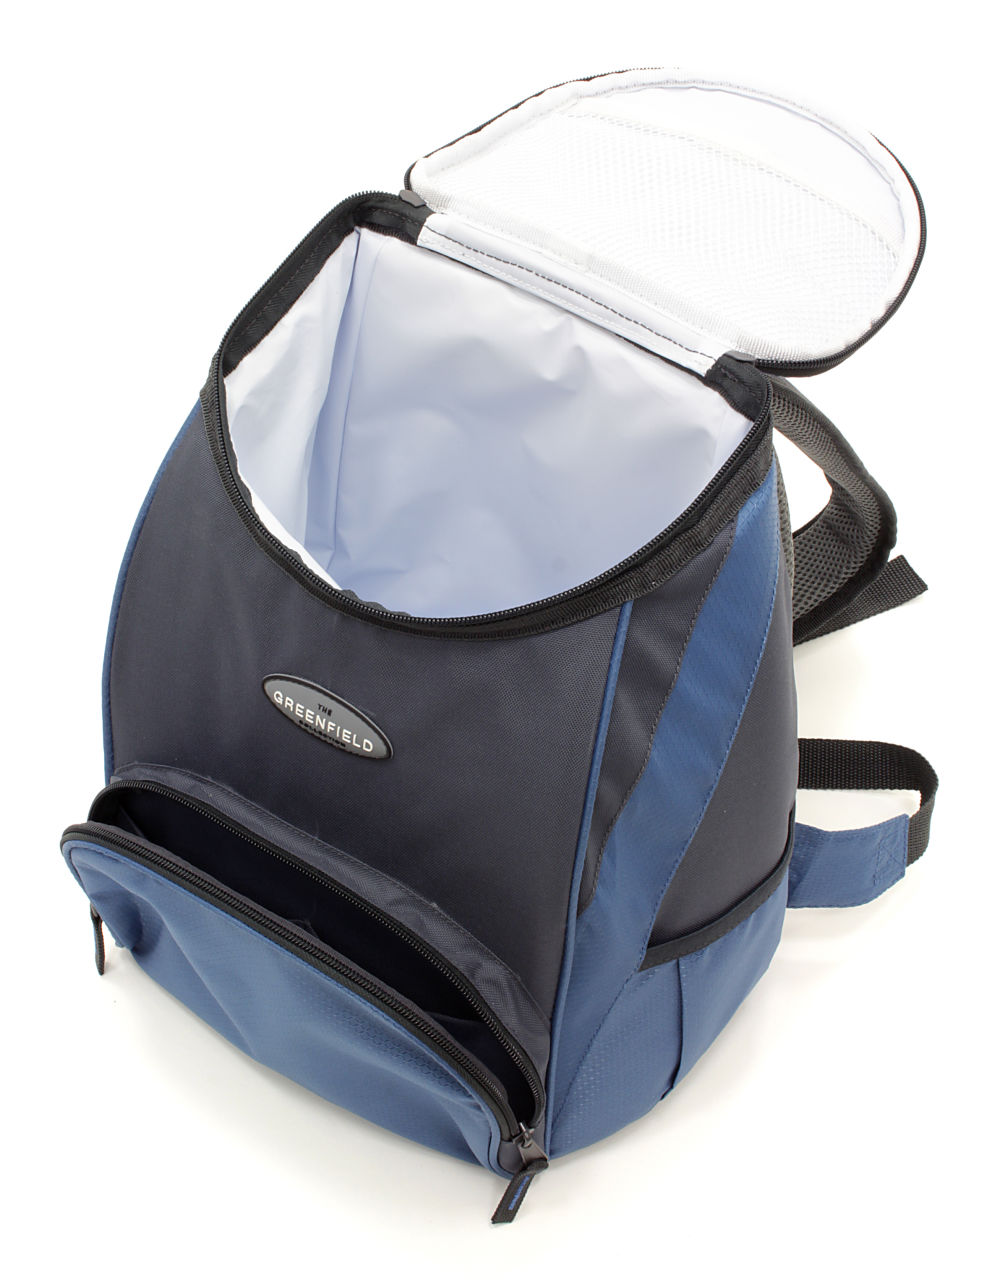 16 Litre Powder Blue Backpack Cool Bag – The Greenfield ...